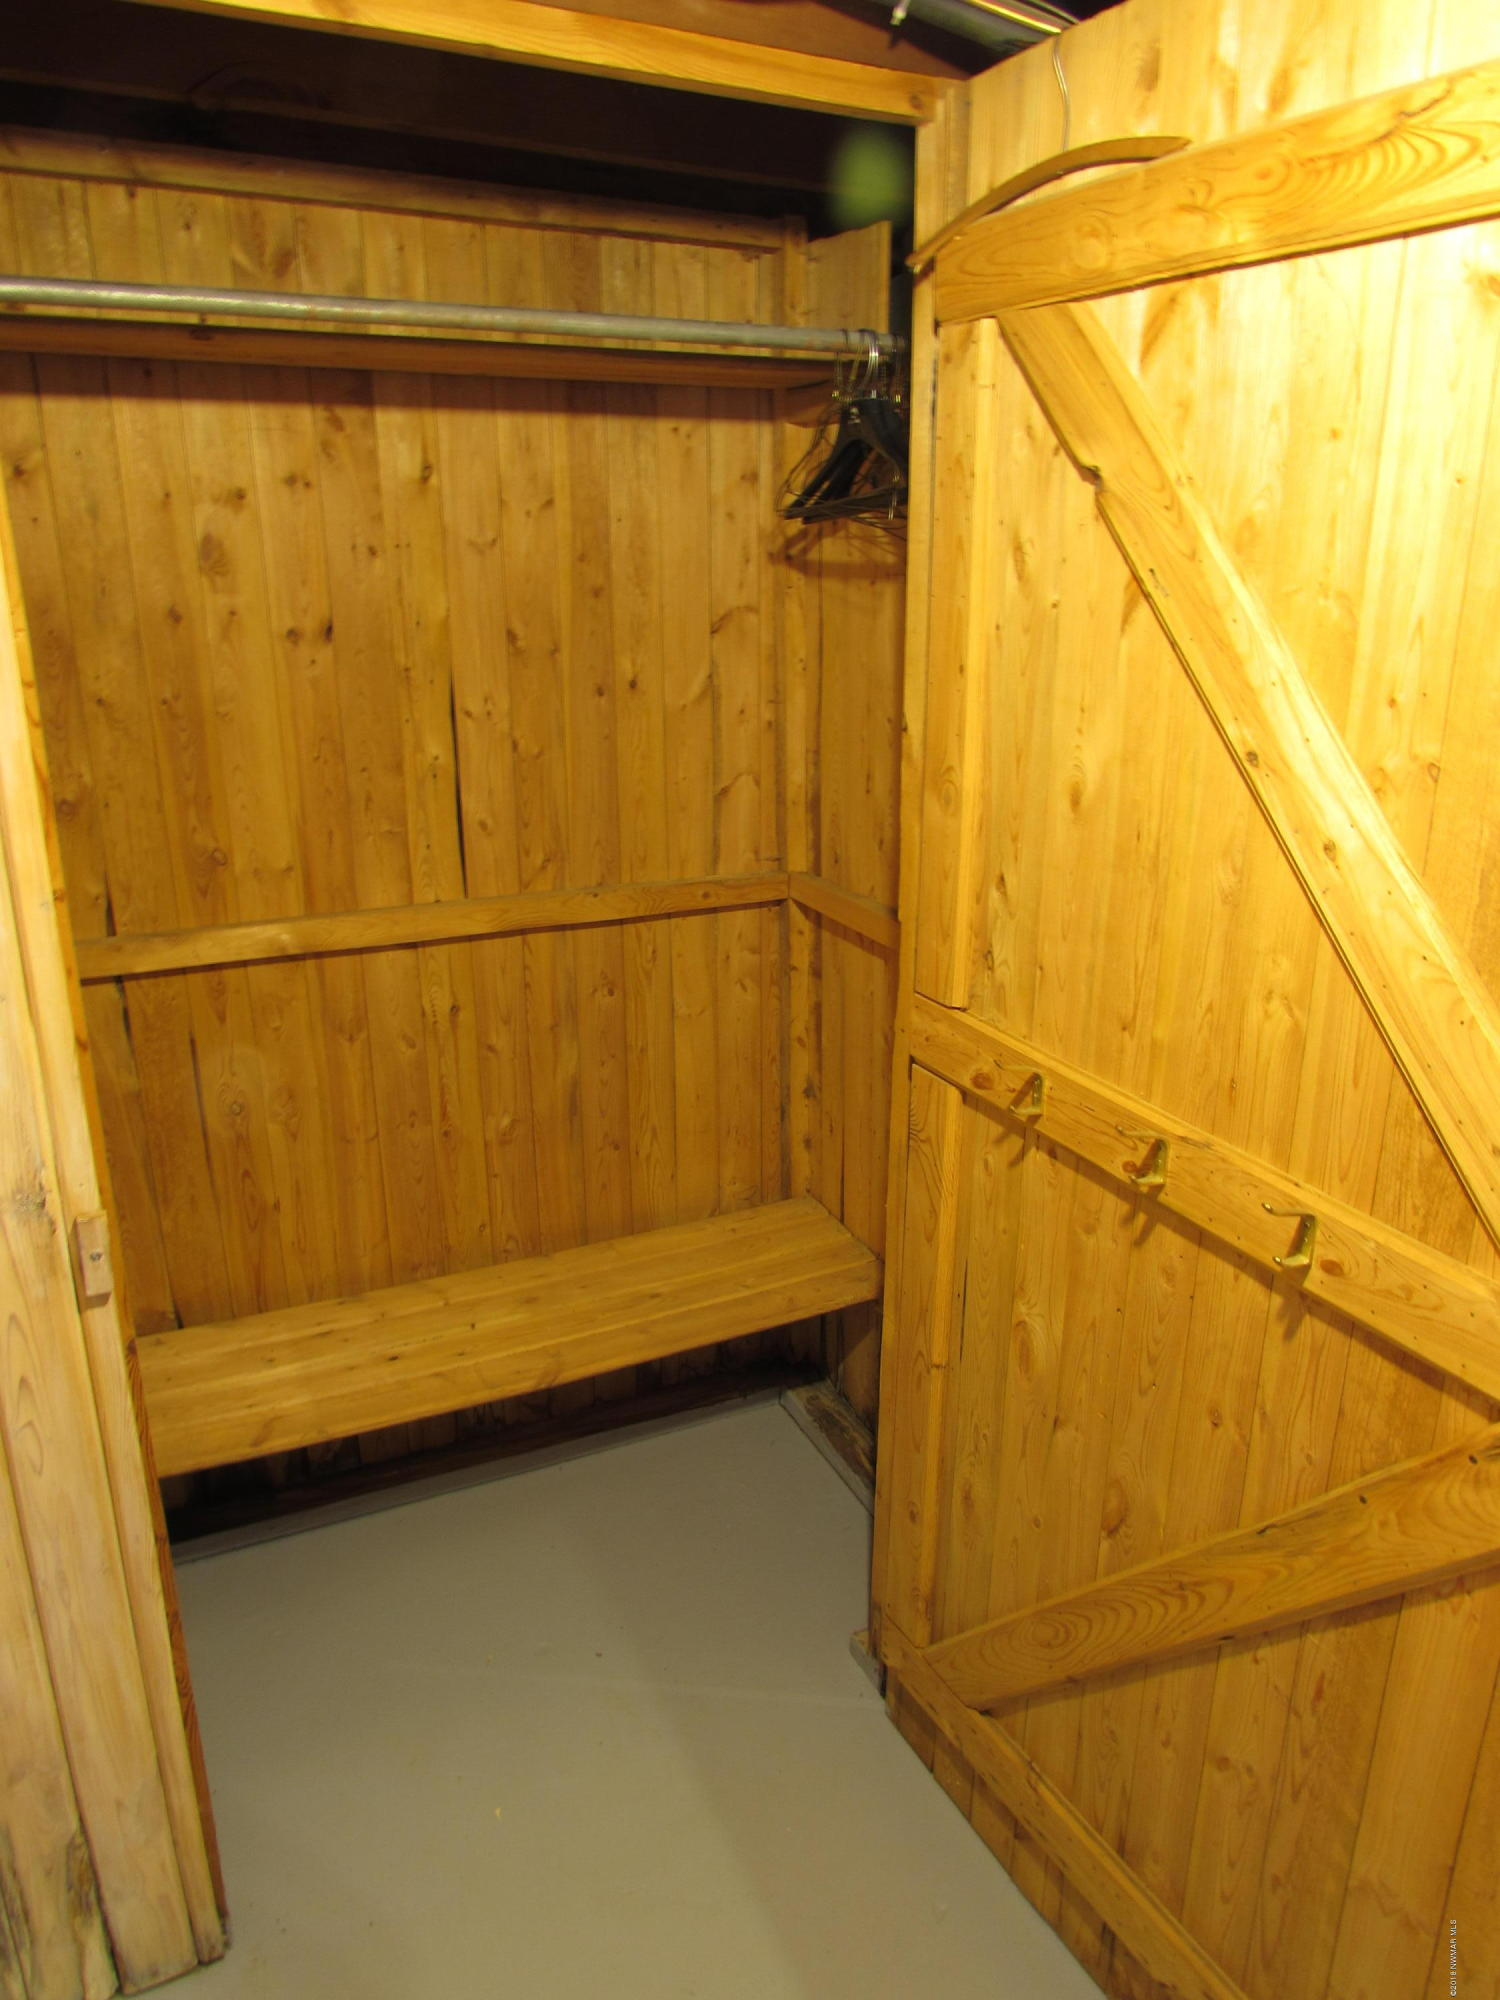 Storage at the Bottom of Stairs - View 2